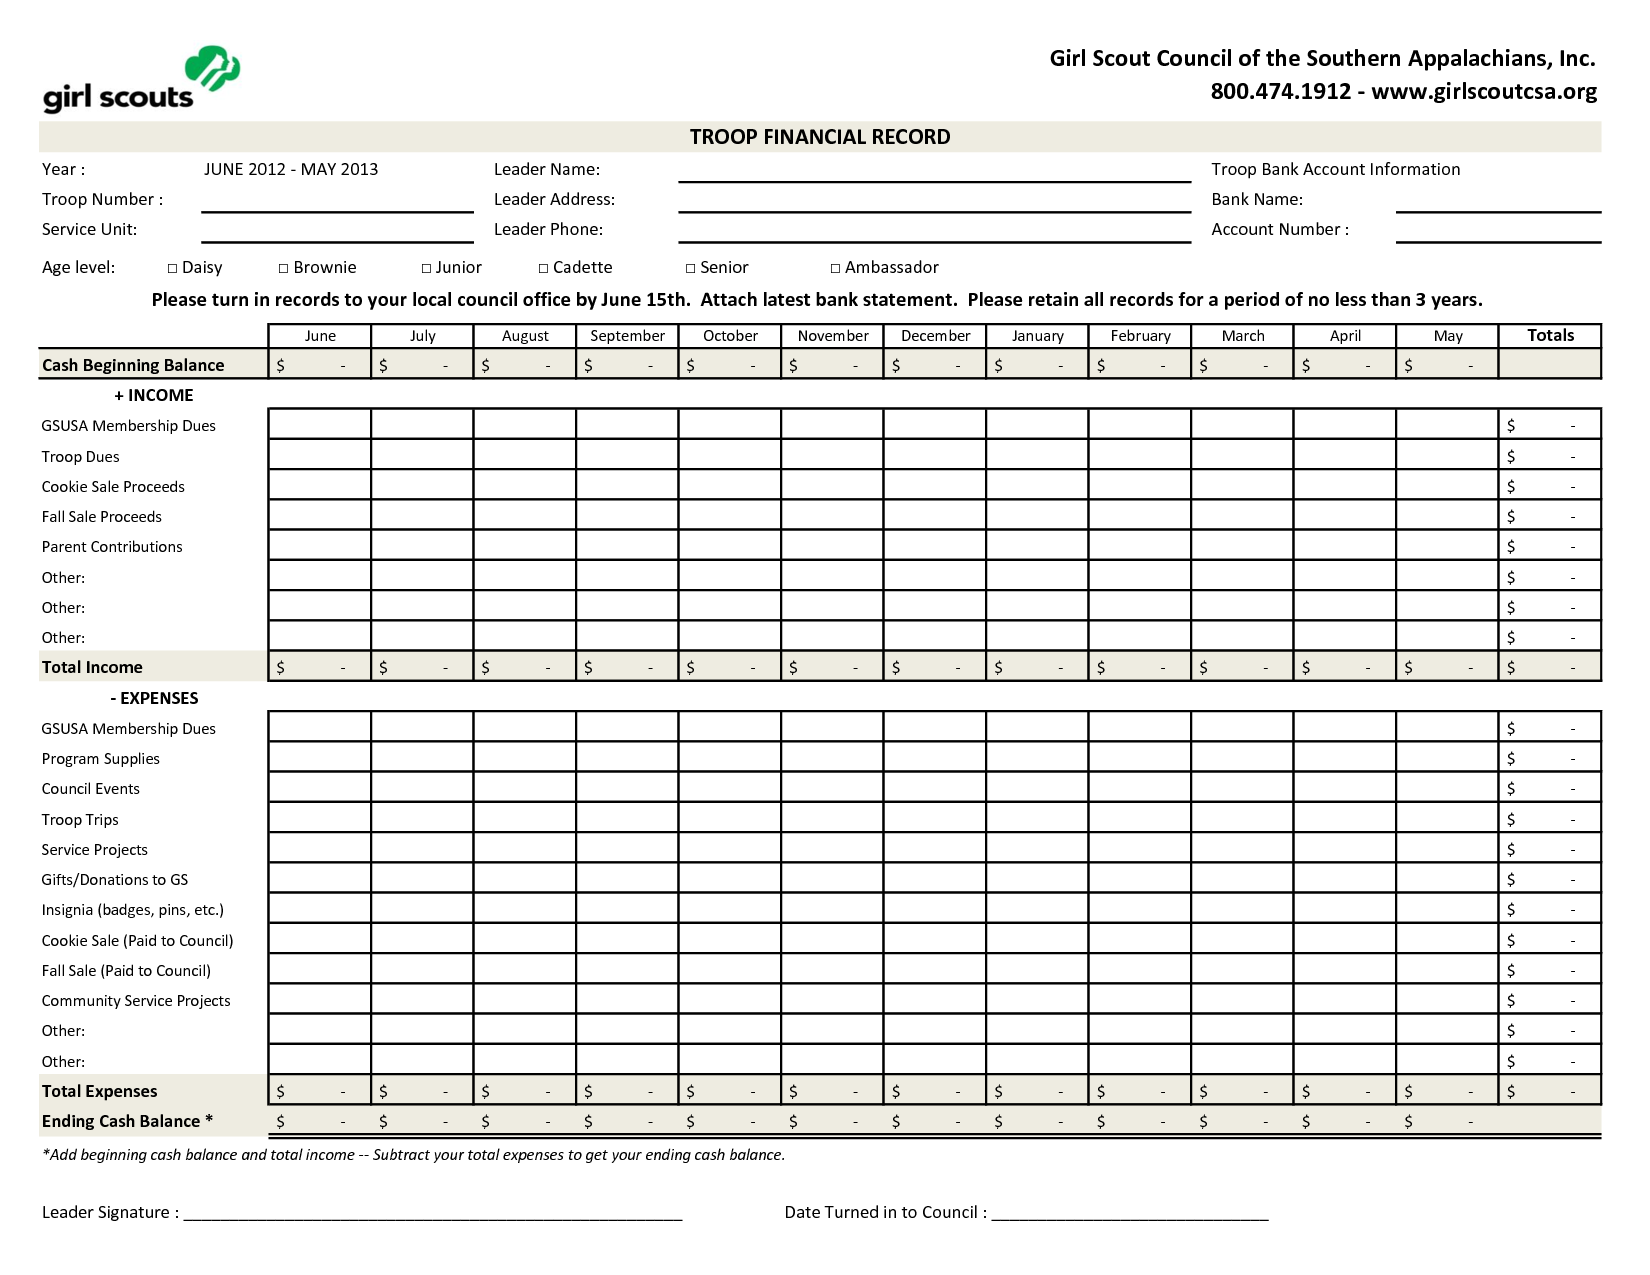 Excel version of Troop Financial Record Girl Scout